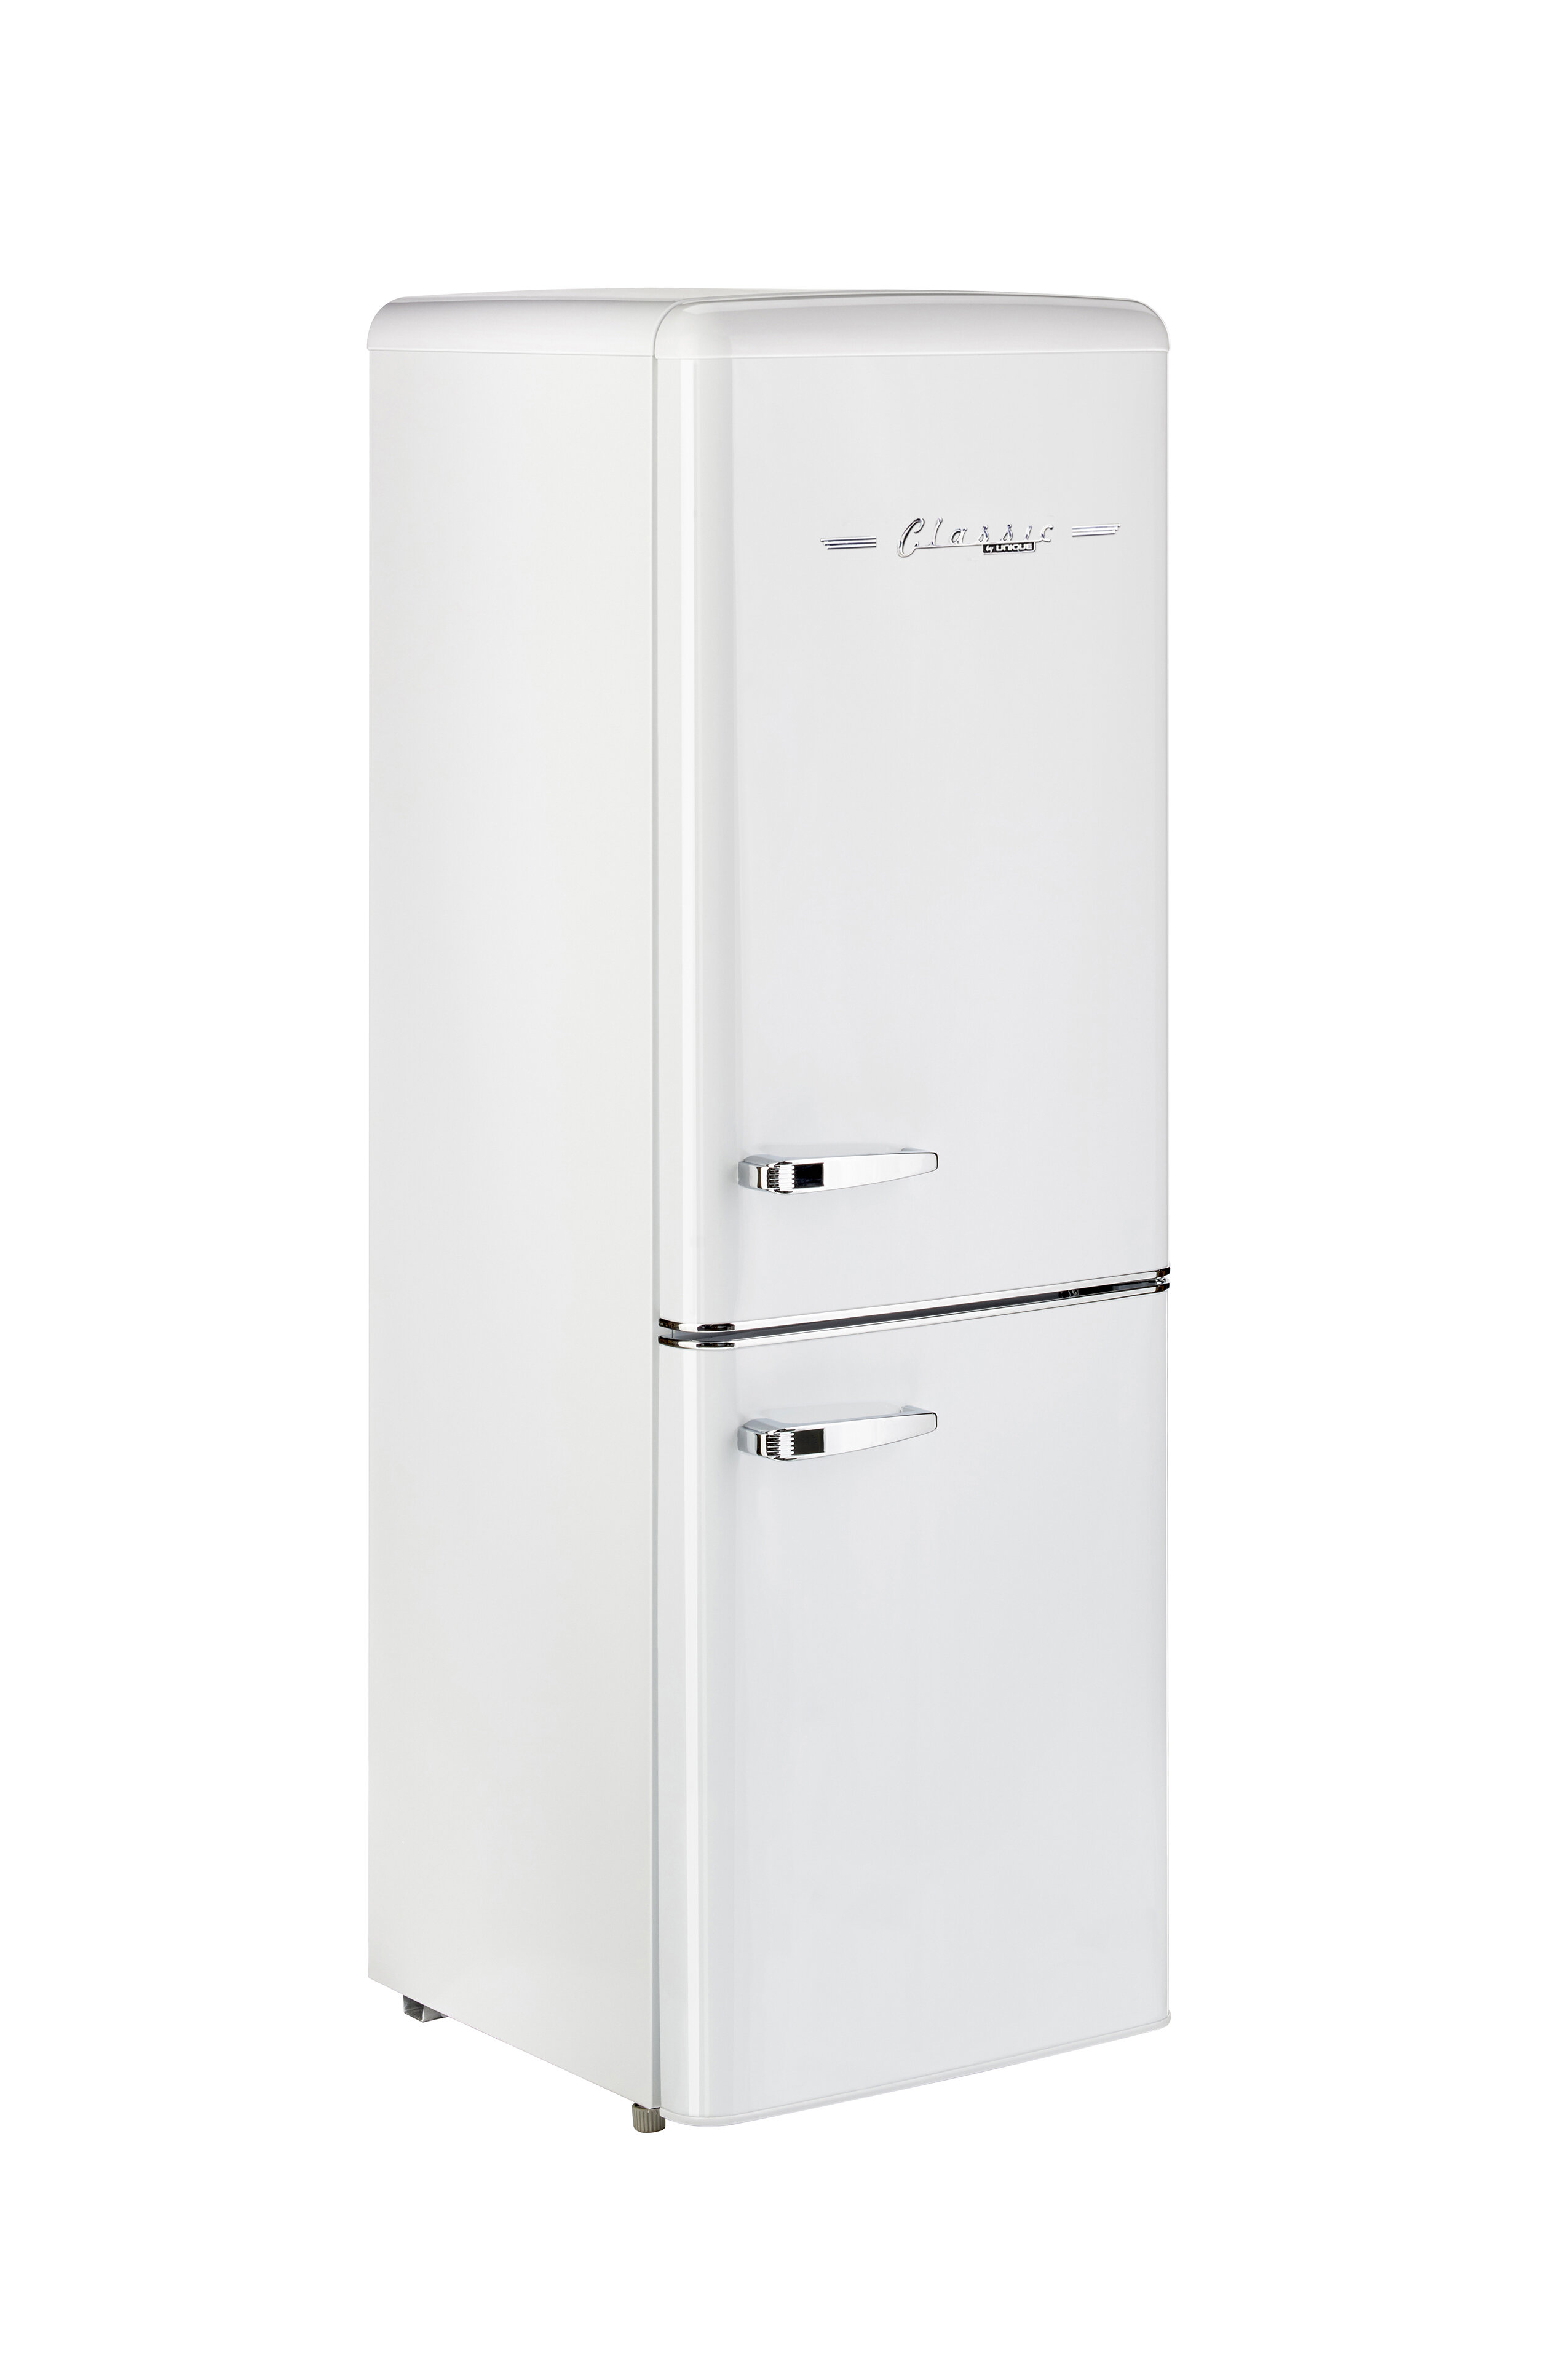 White Refrigerators You Ll Love In 2021 Wayfair